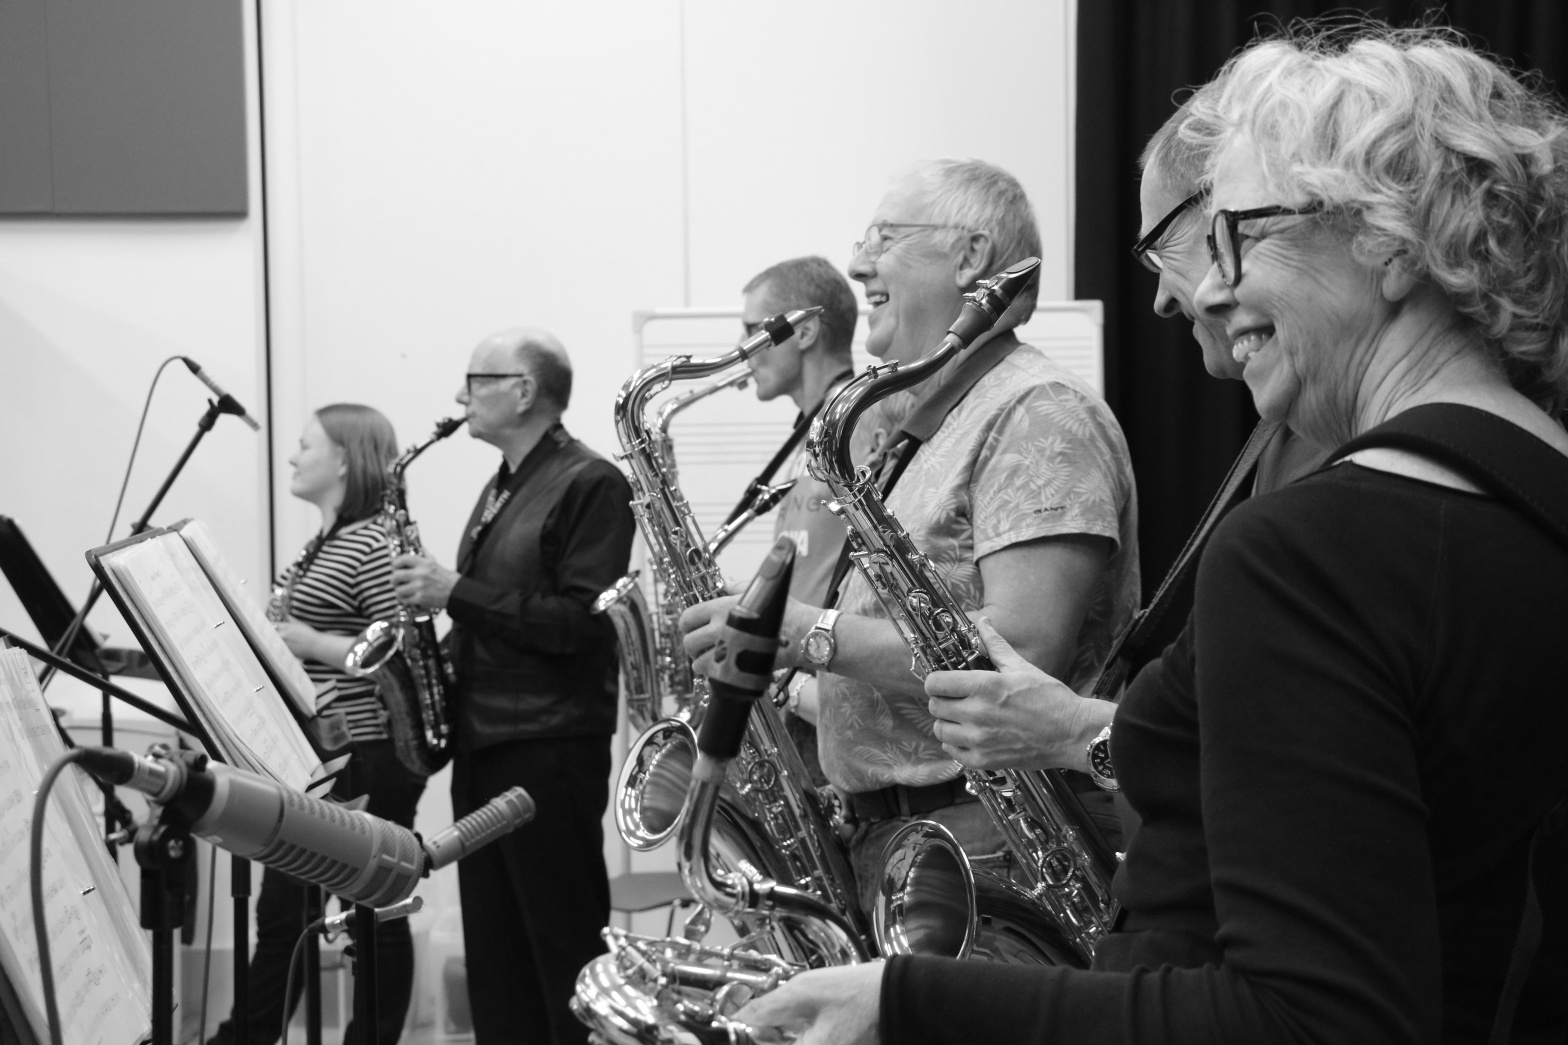 Guiseley Jazz band - recording session